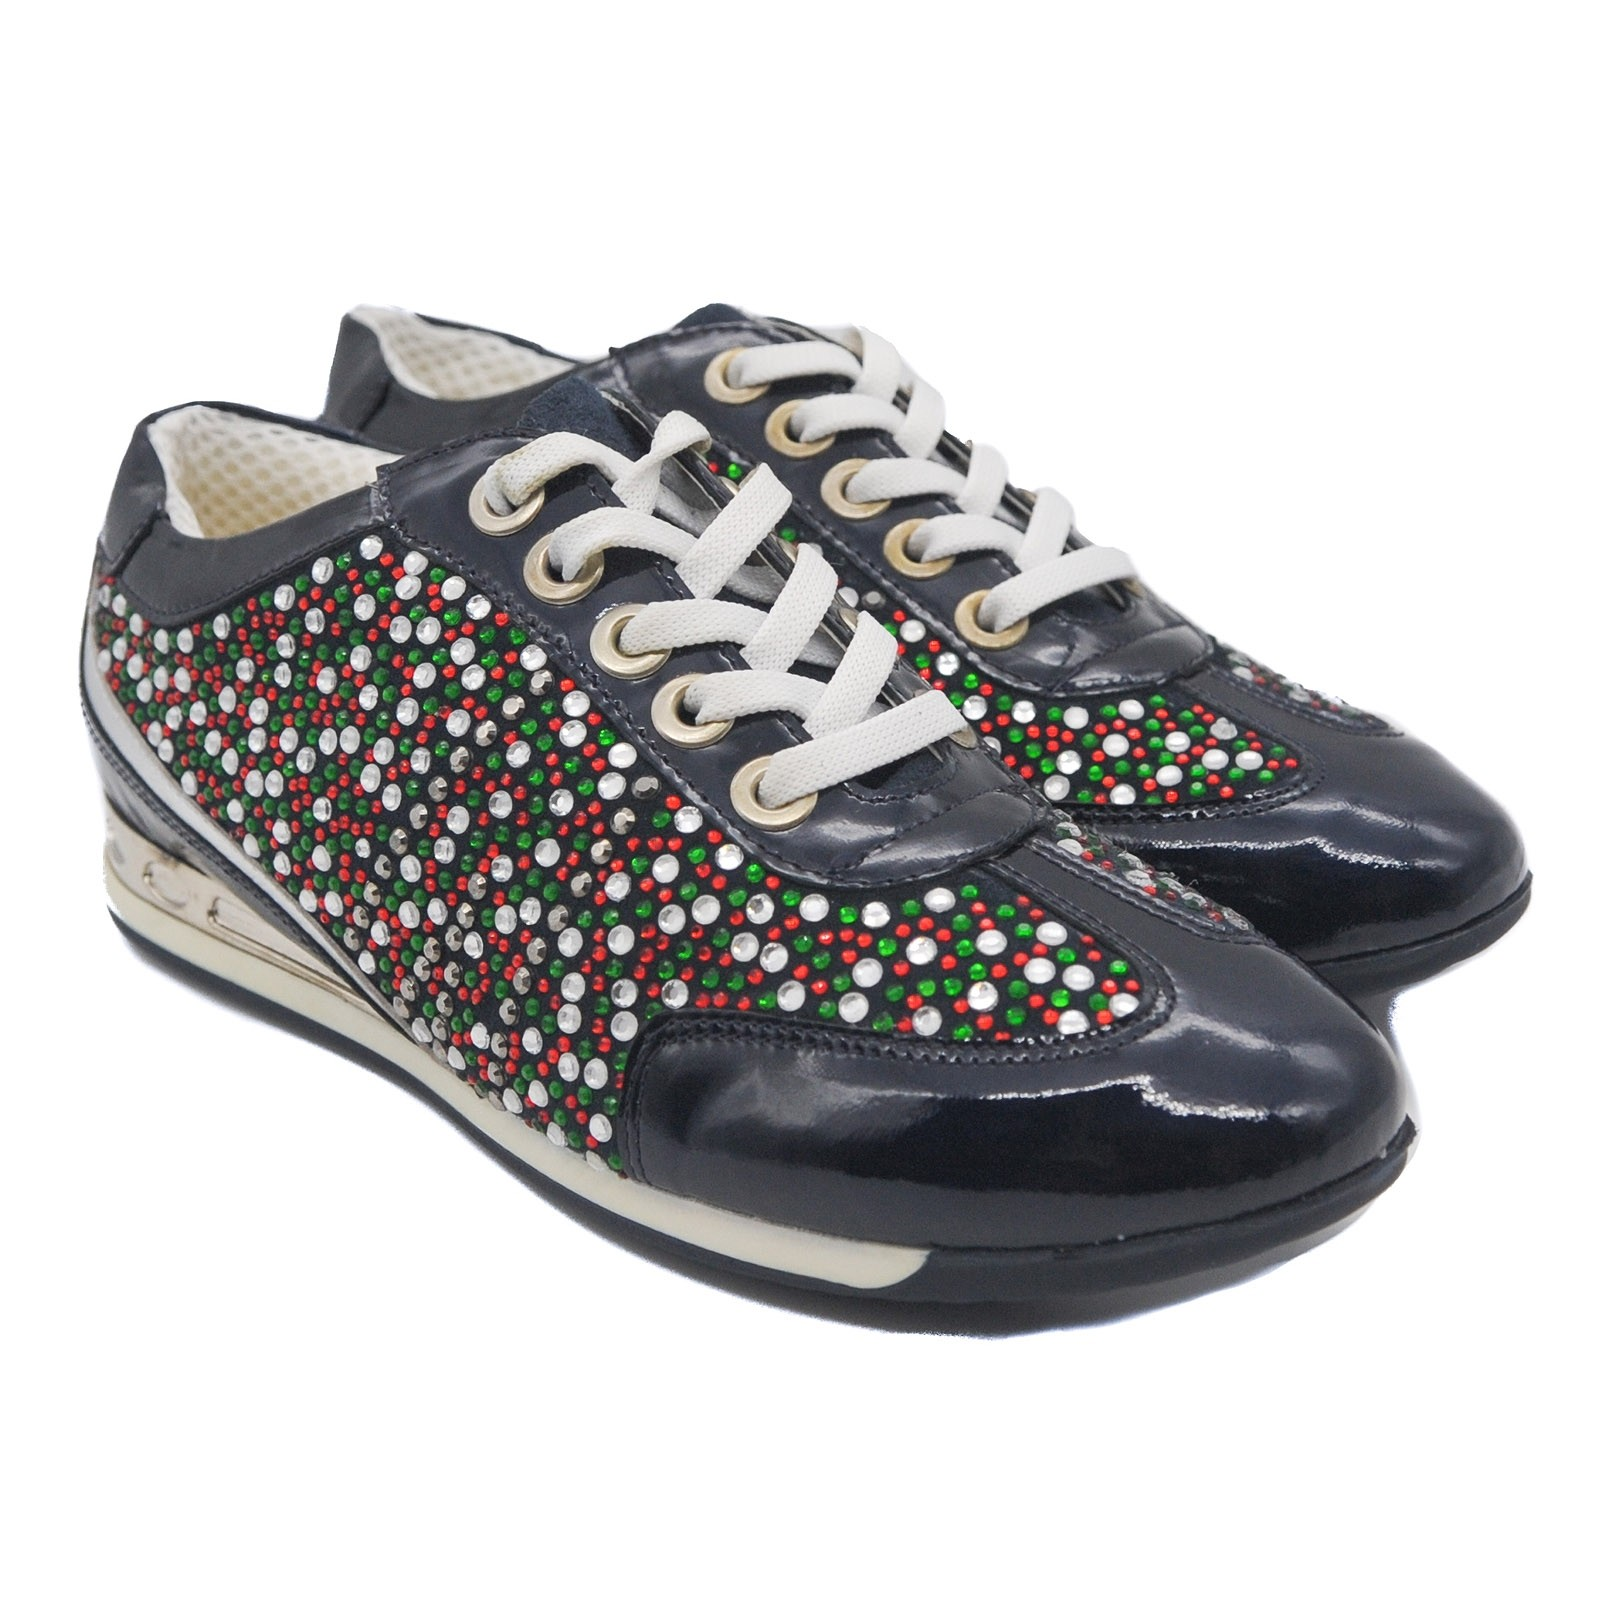 Goody2Shoes Ladies Lace Up Patent Black Trainers with Gems in Red Green and White